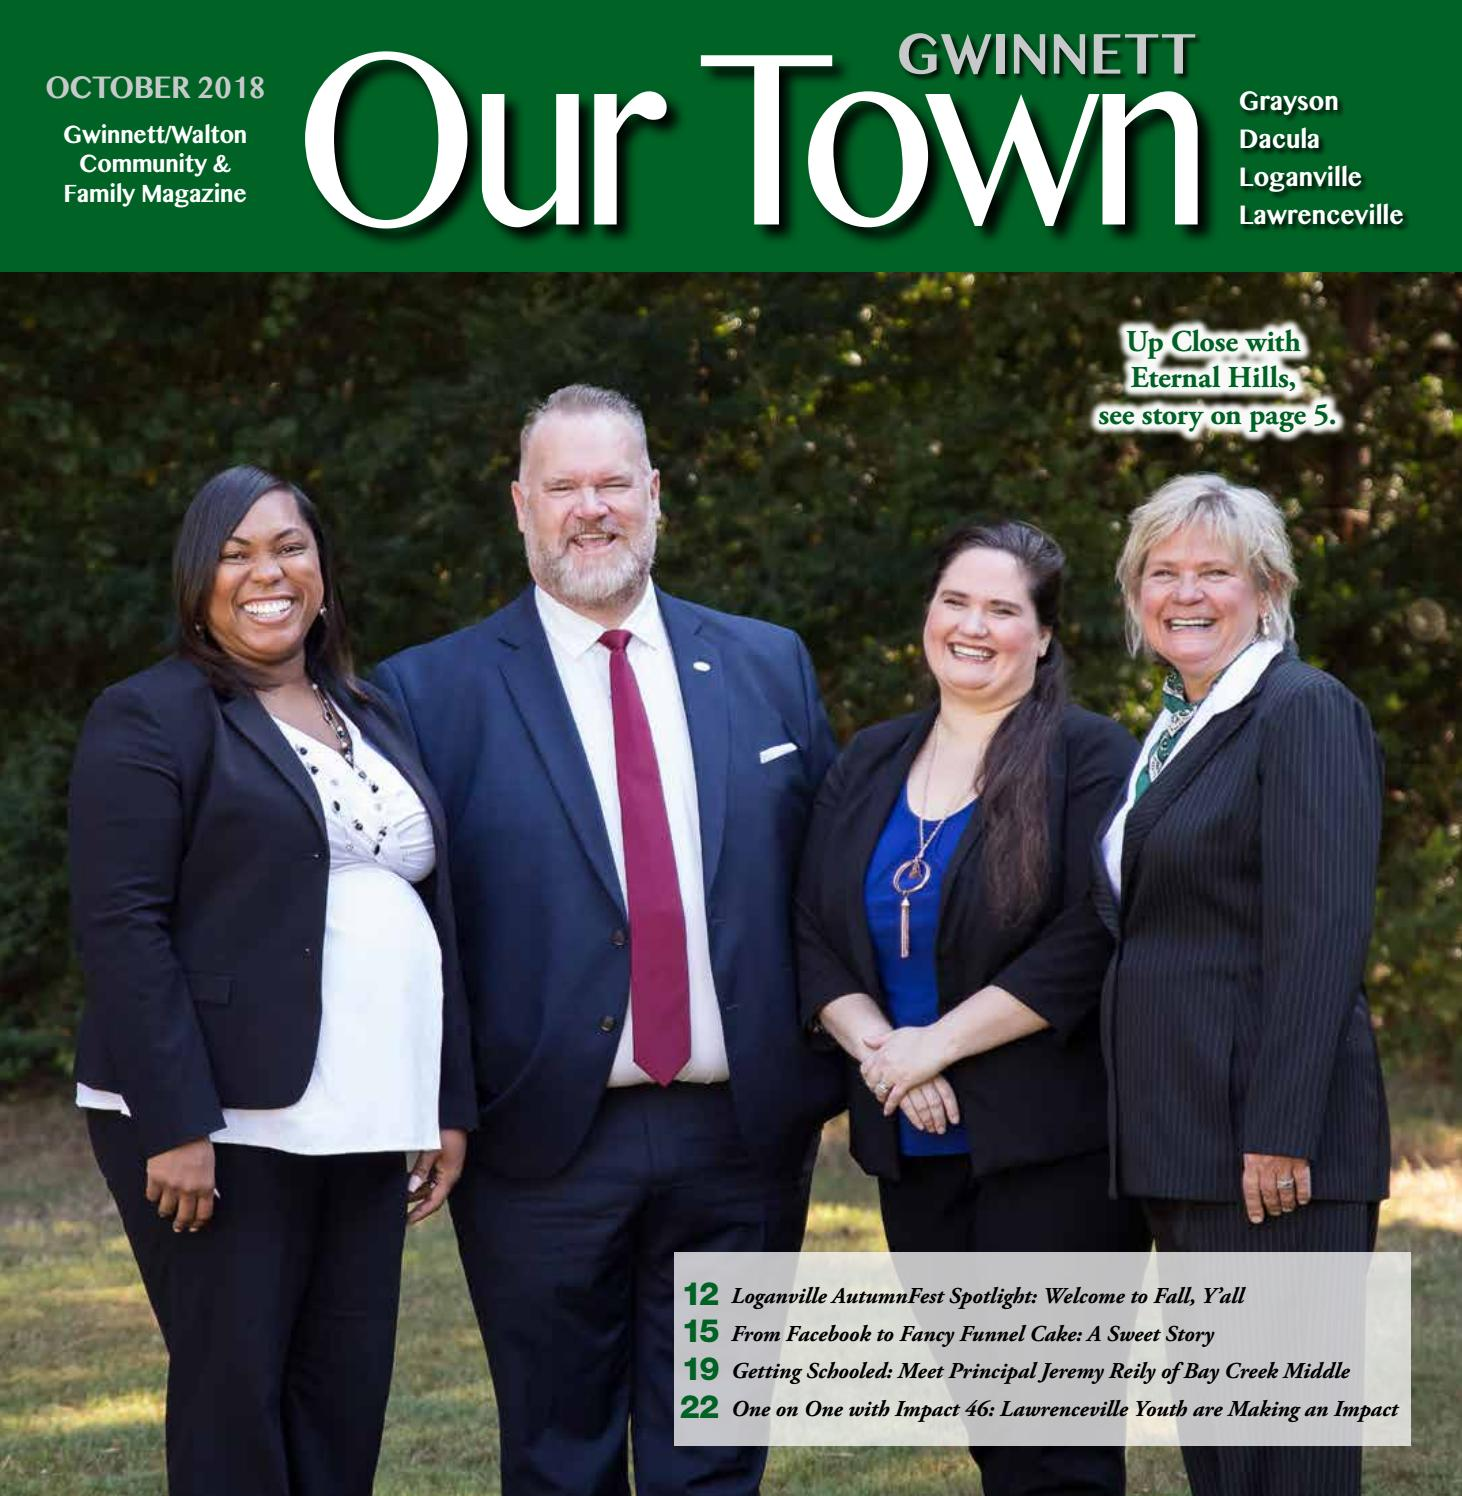 OCTOBER 2018: Our Town Gwinnett/Walton Monthly Magazine by Our Town